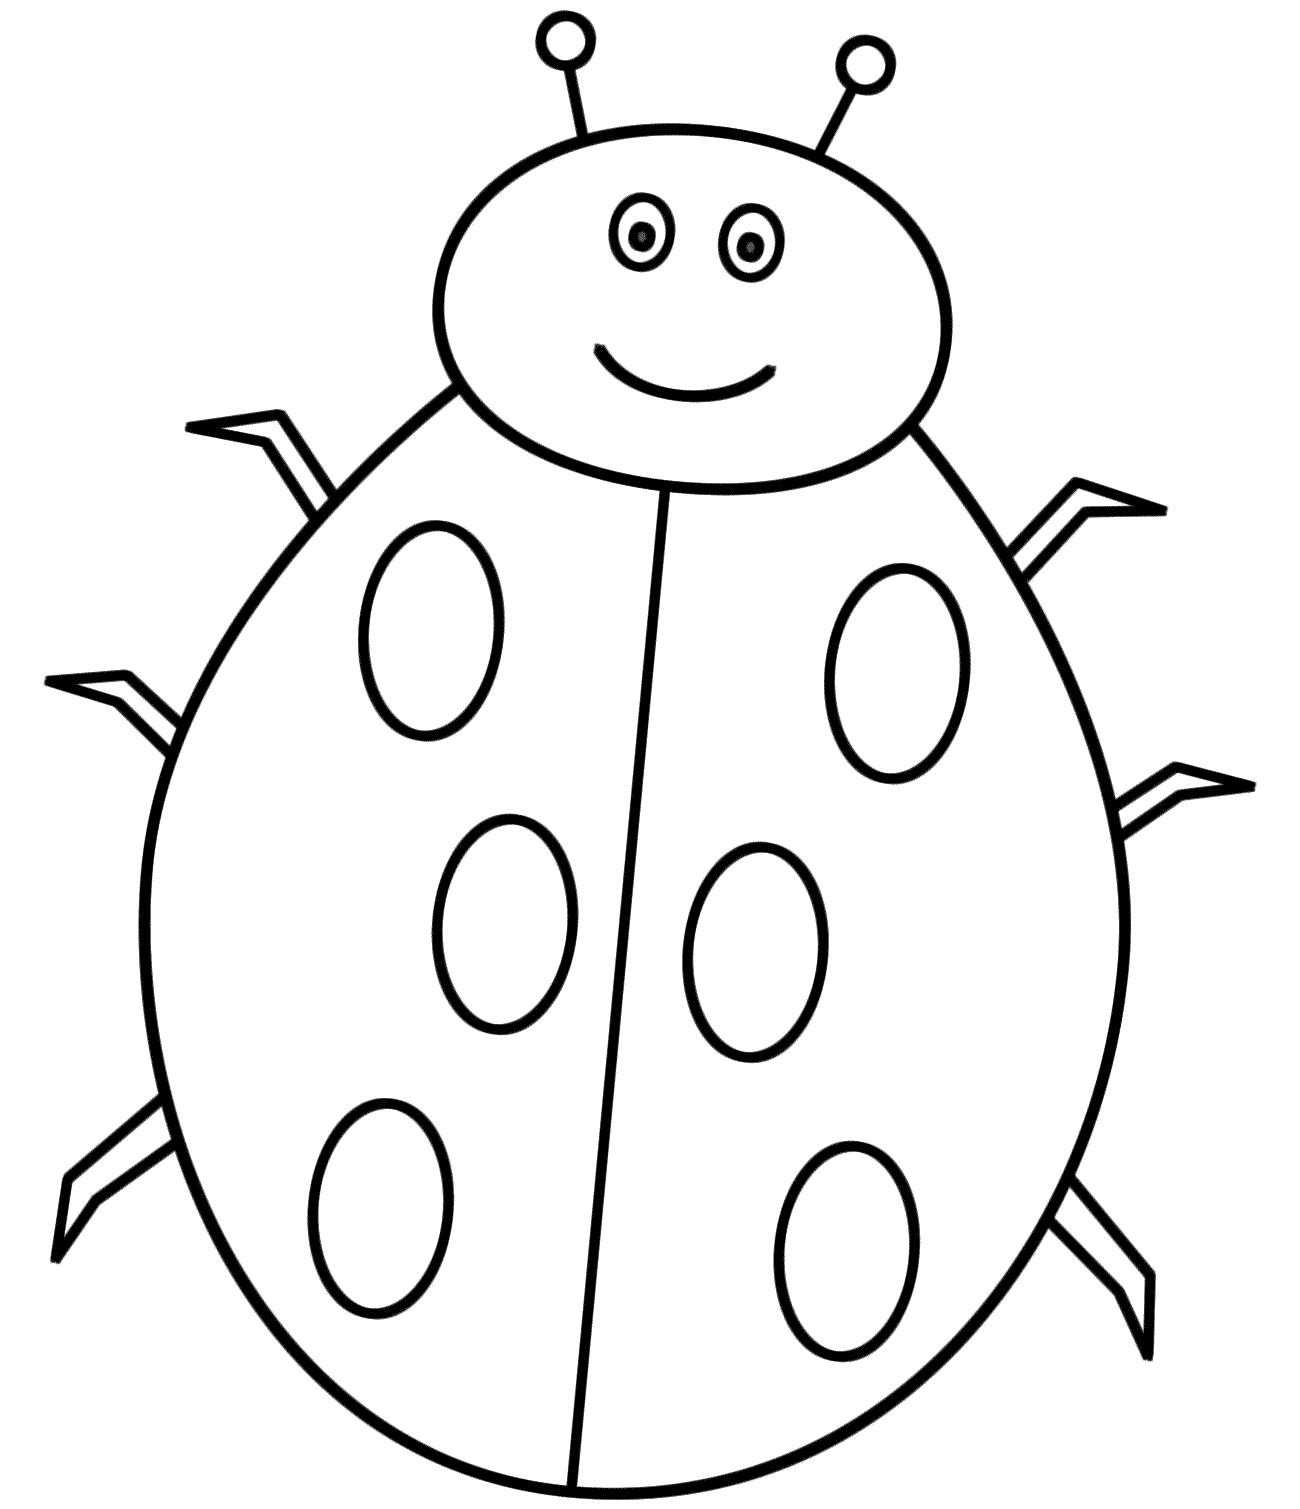 ladybug coloring sheet ladybug coloring pages to download and print for free sheet ladybug coloring